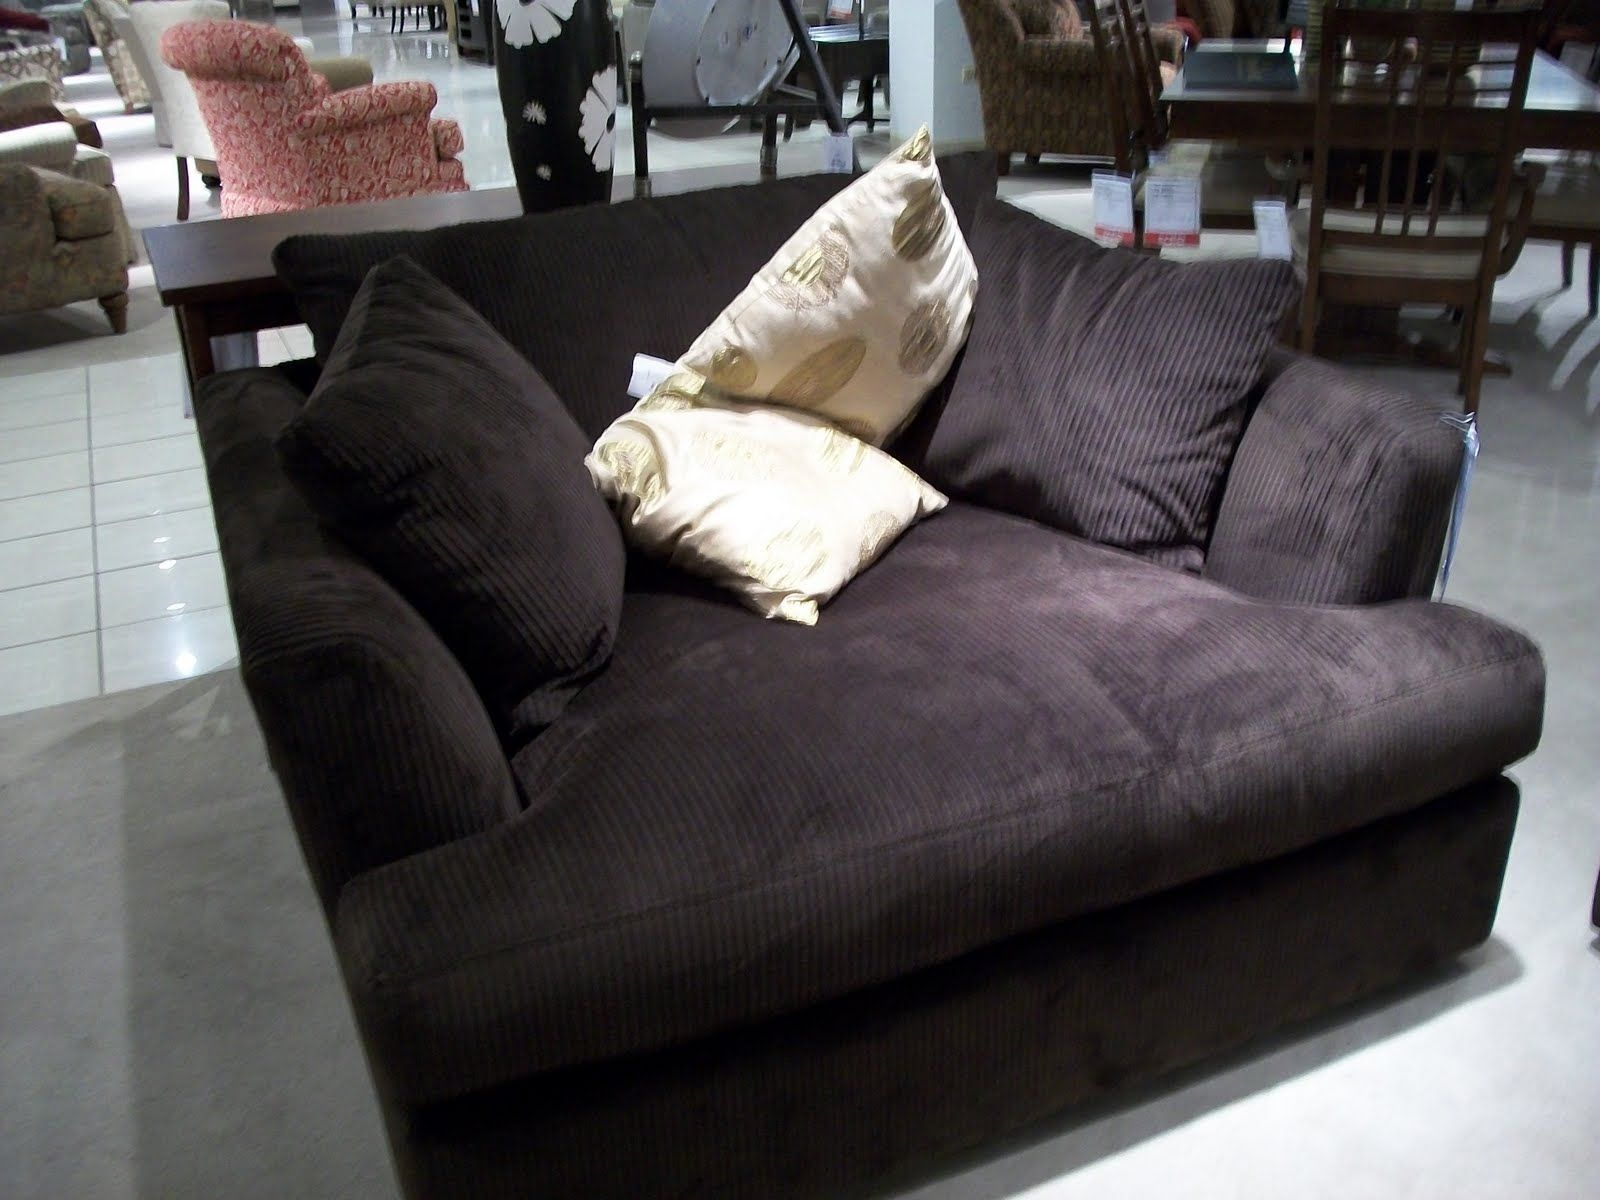 Big comfy oversized armchair where you can snuggle up with a good